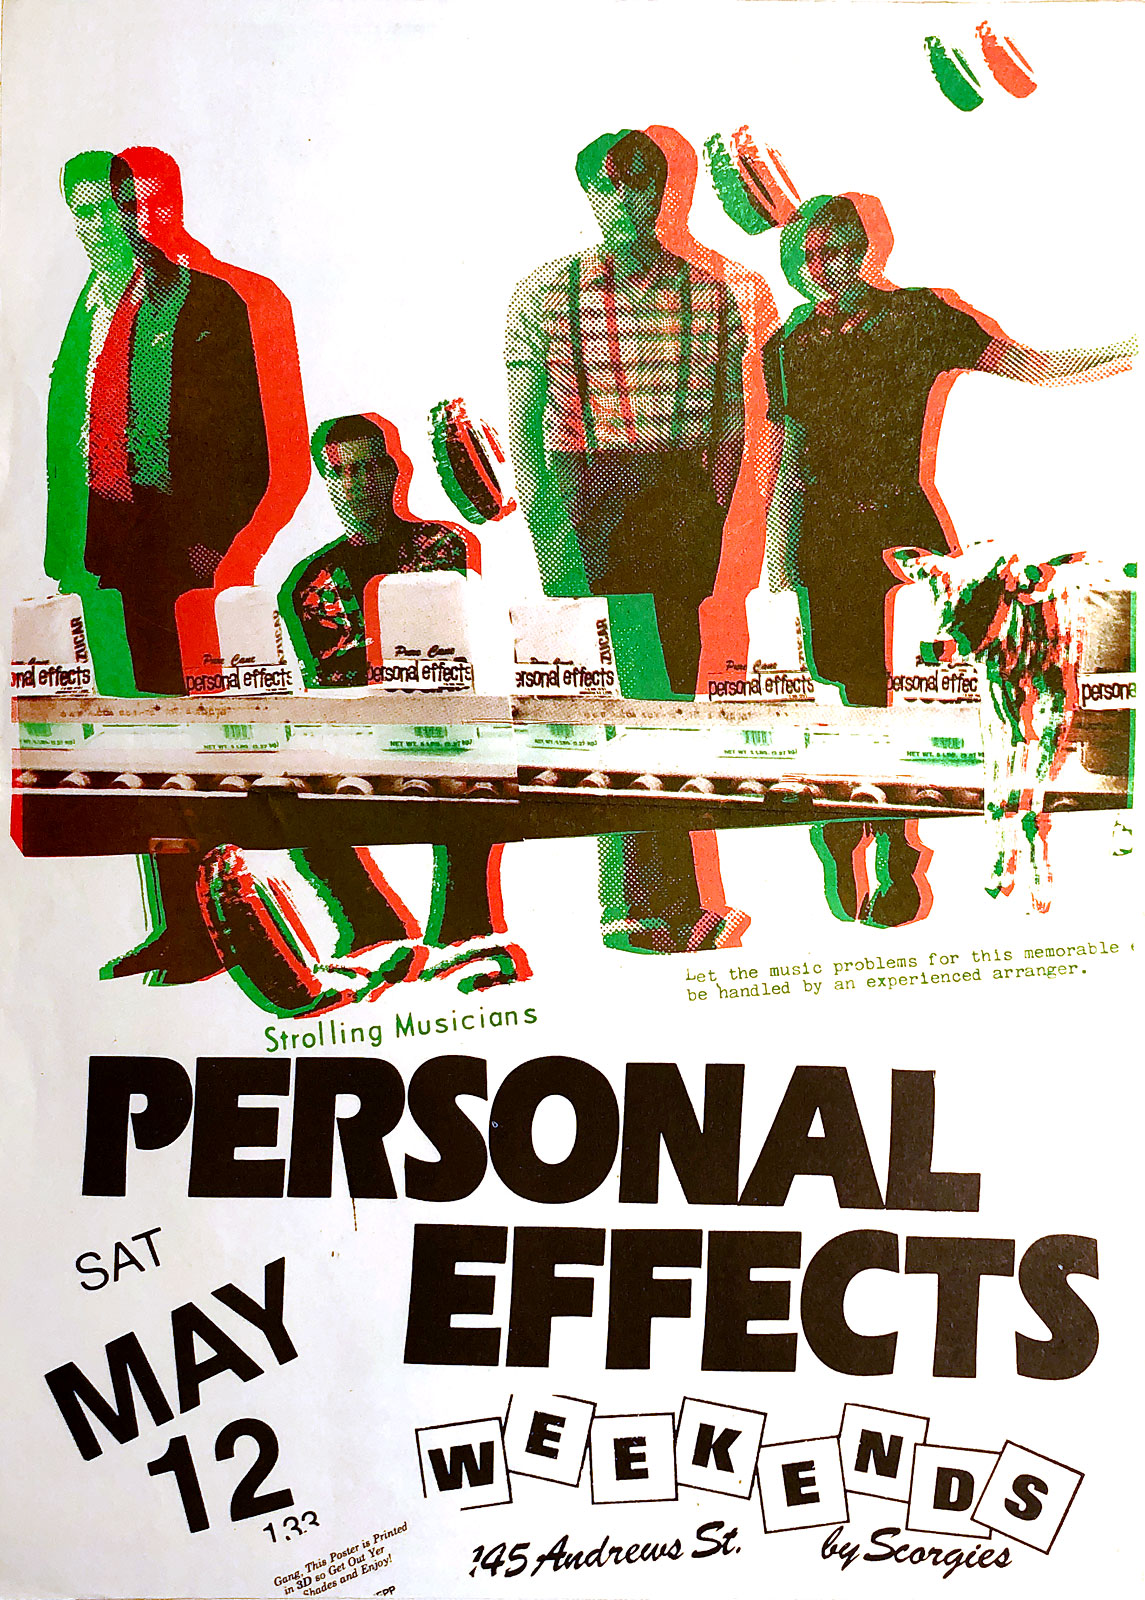 Poster for Personal Effects at Scorgie's in Rochester, New York on 05.12.1984. Chris Schepp designed this 3D poster and printed it at Midtown Printing.